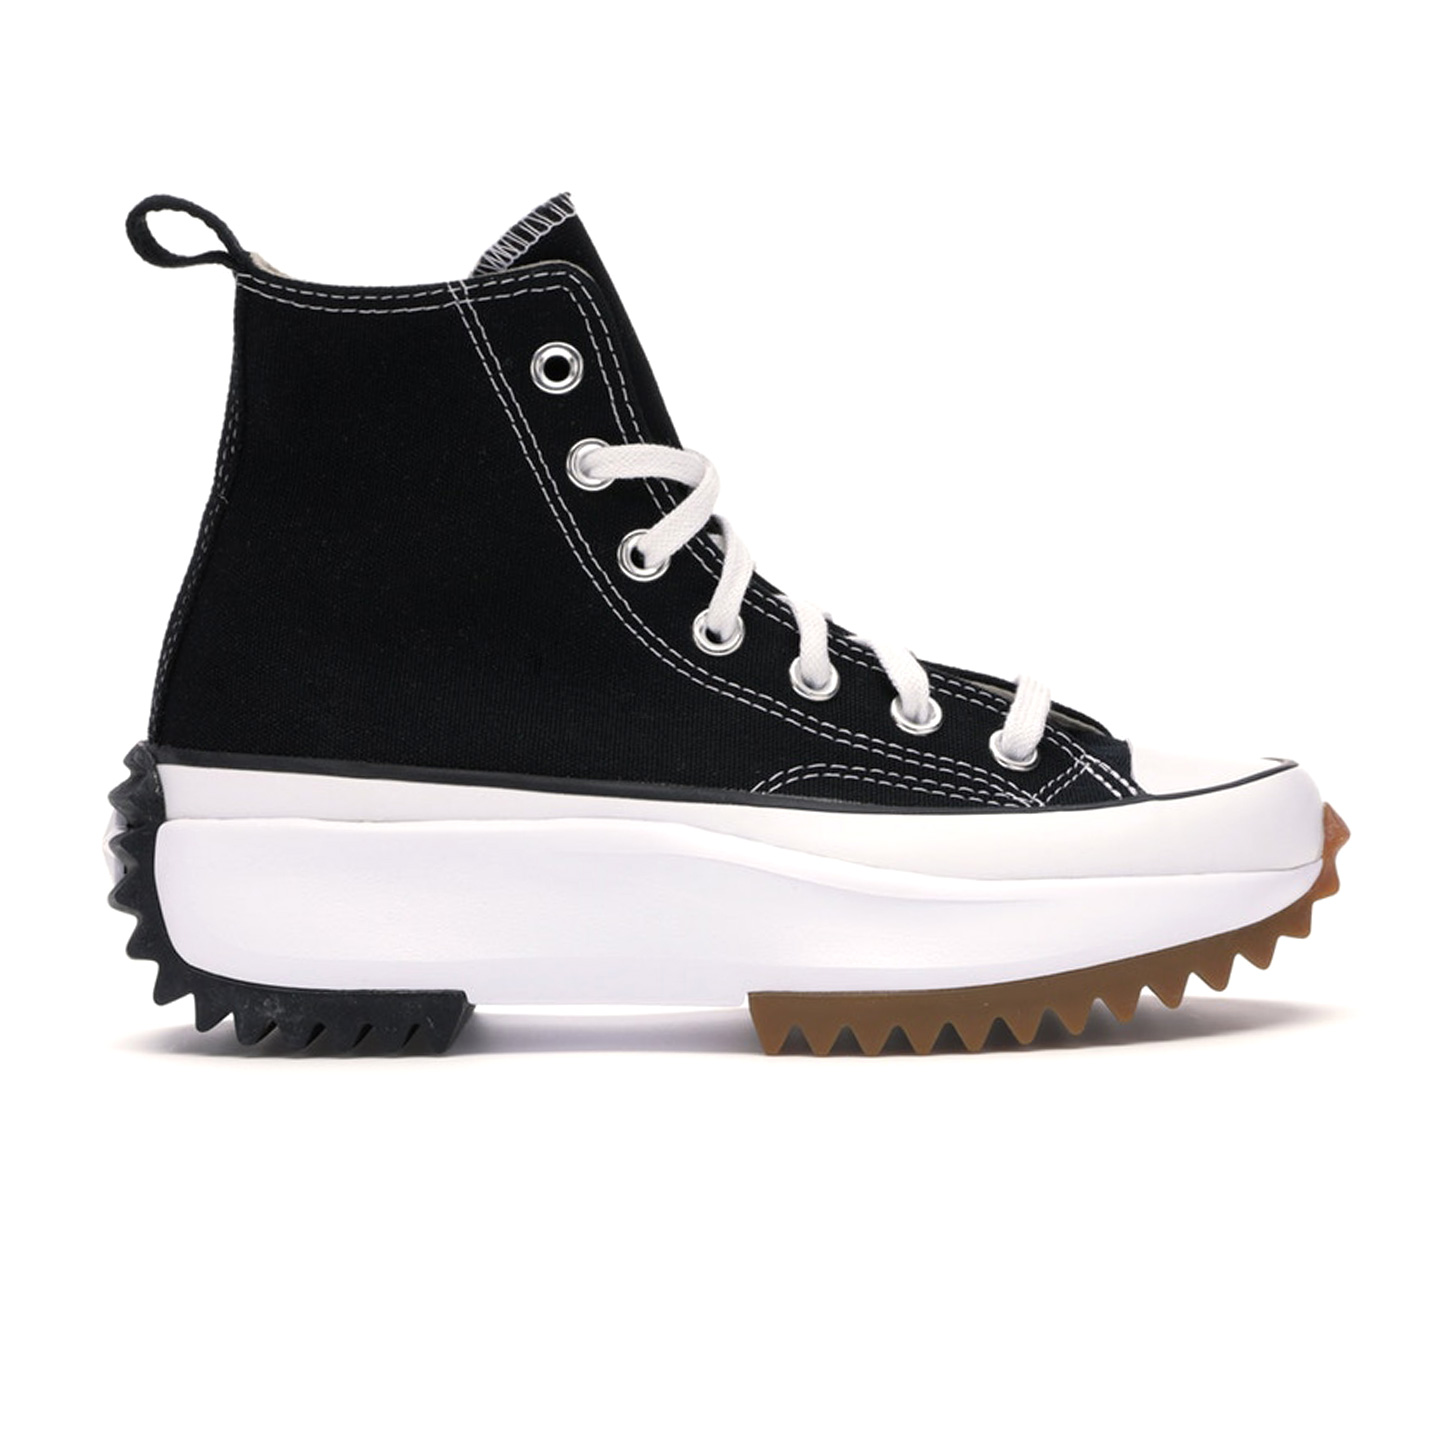 Converse Run Star Hike Hi Black White Gum